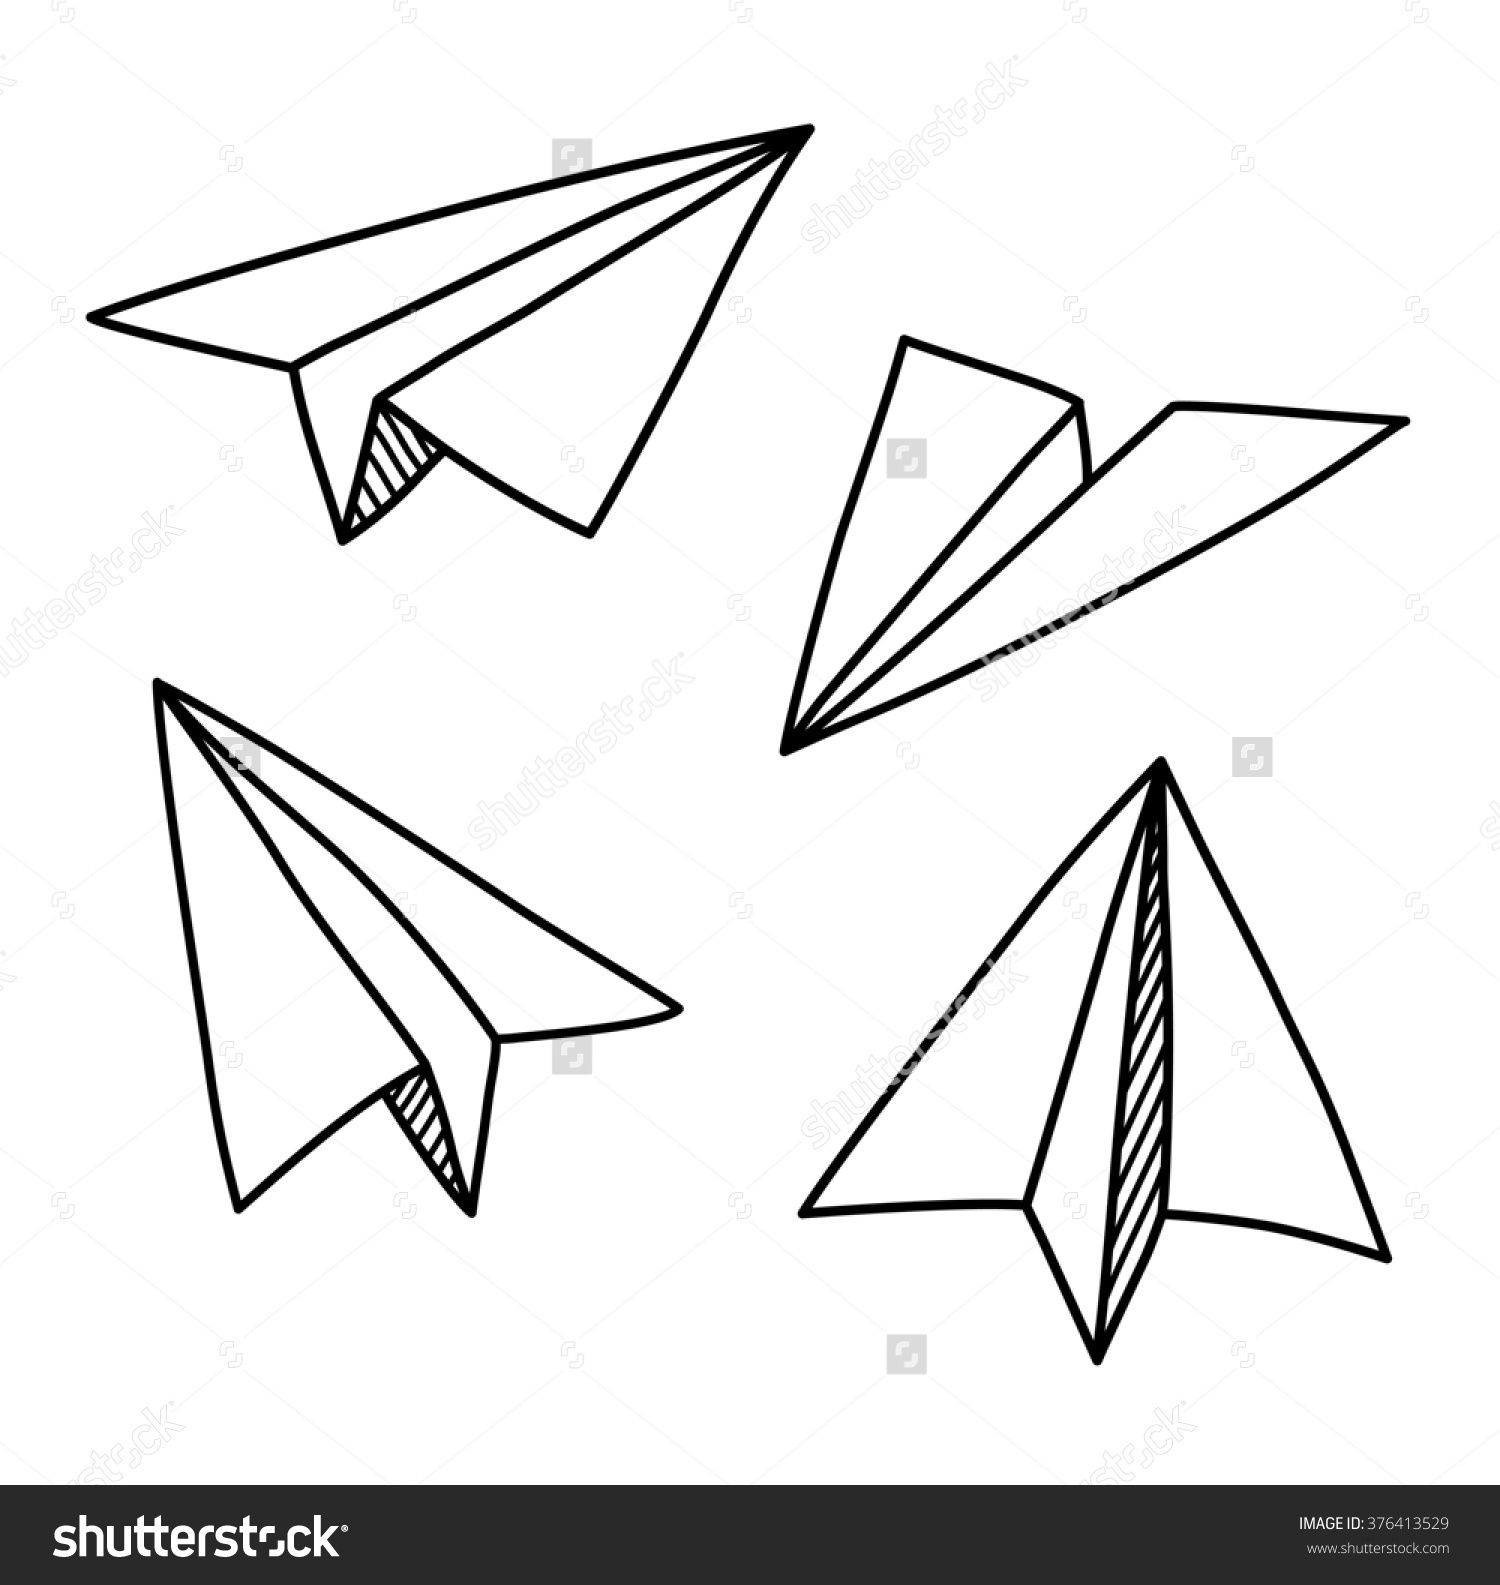 Doodle paper plane set in hand drawn sketch style isolated illustration